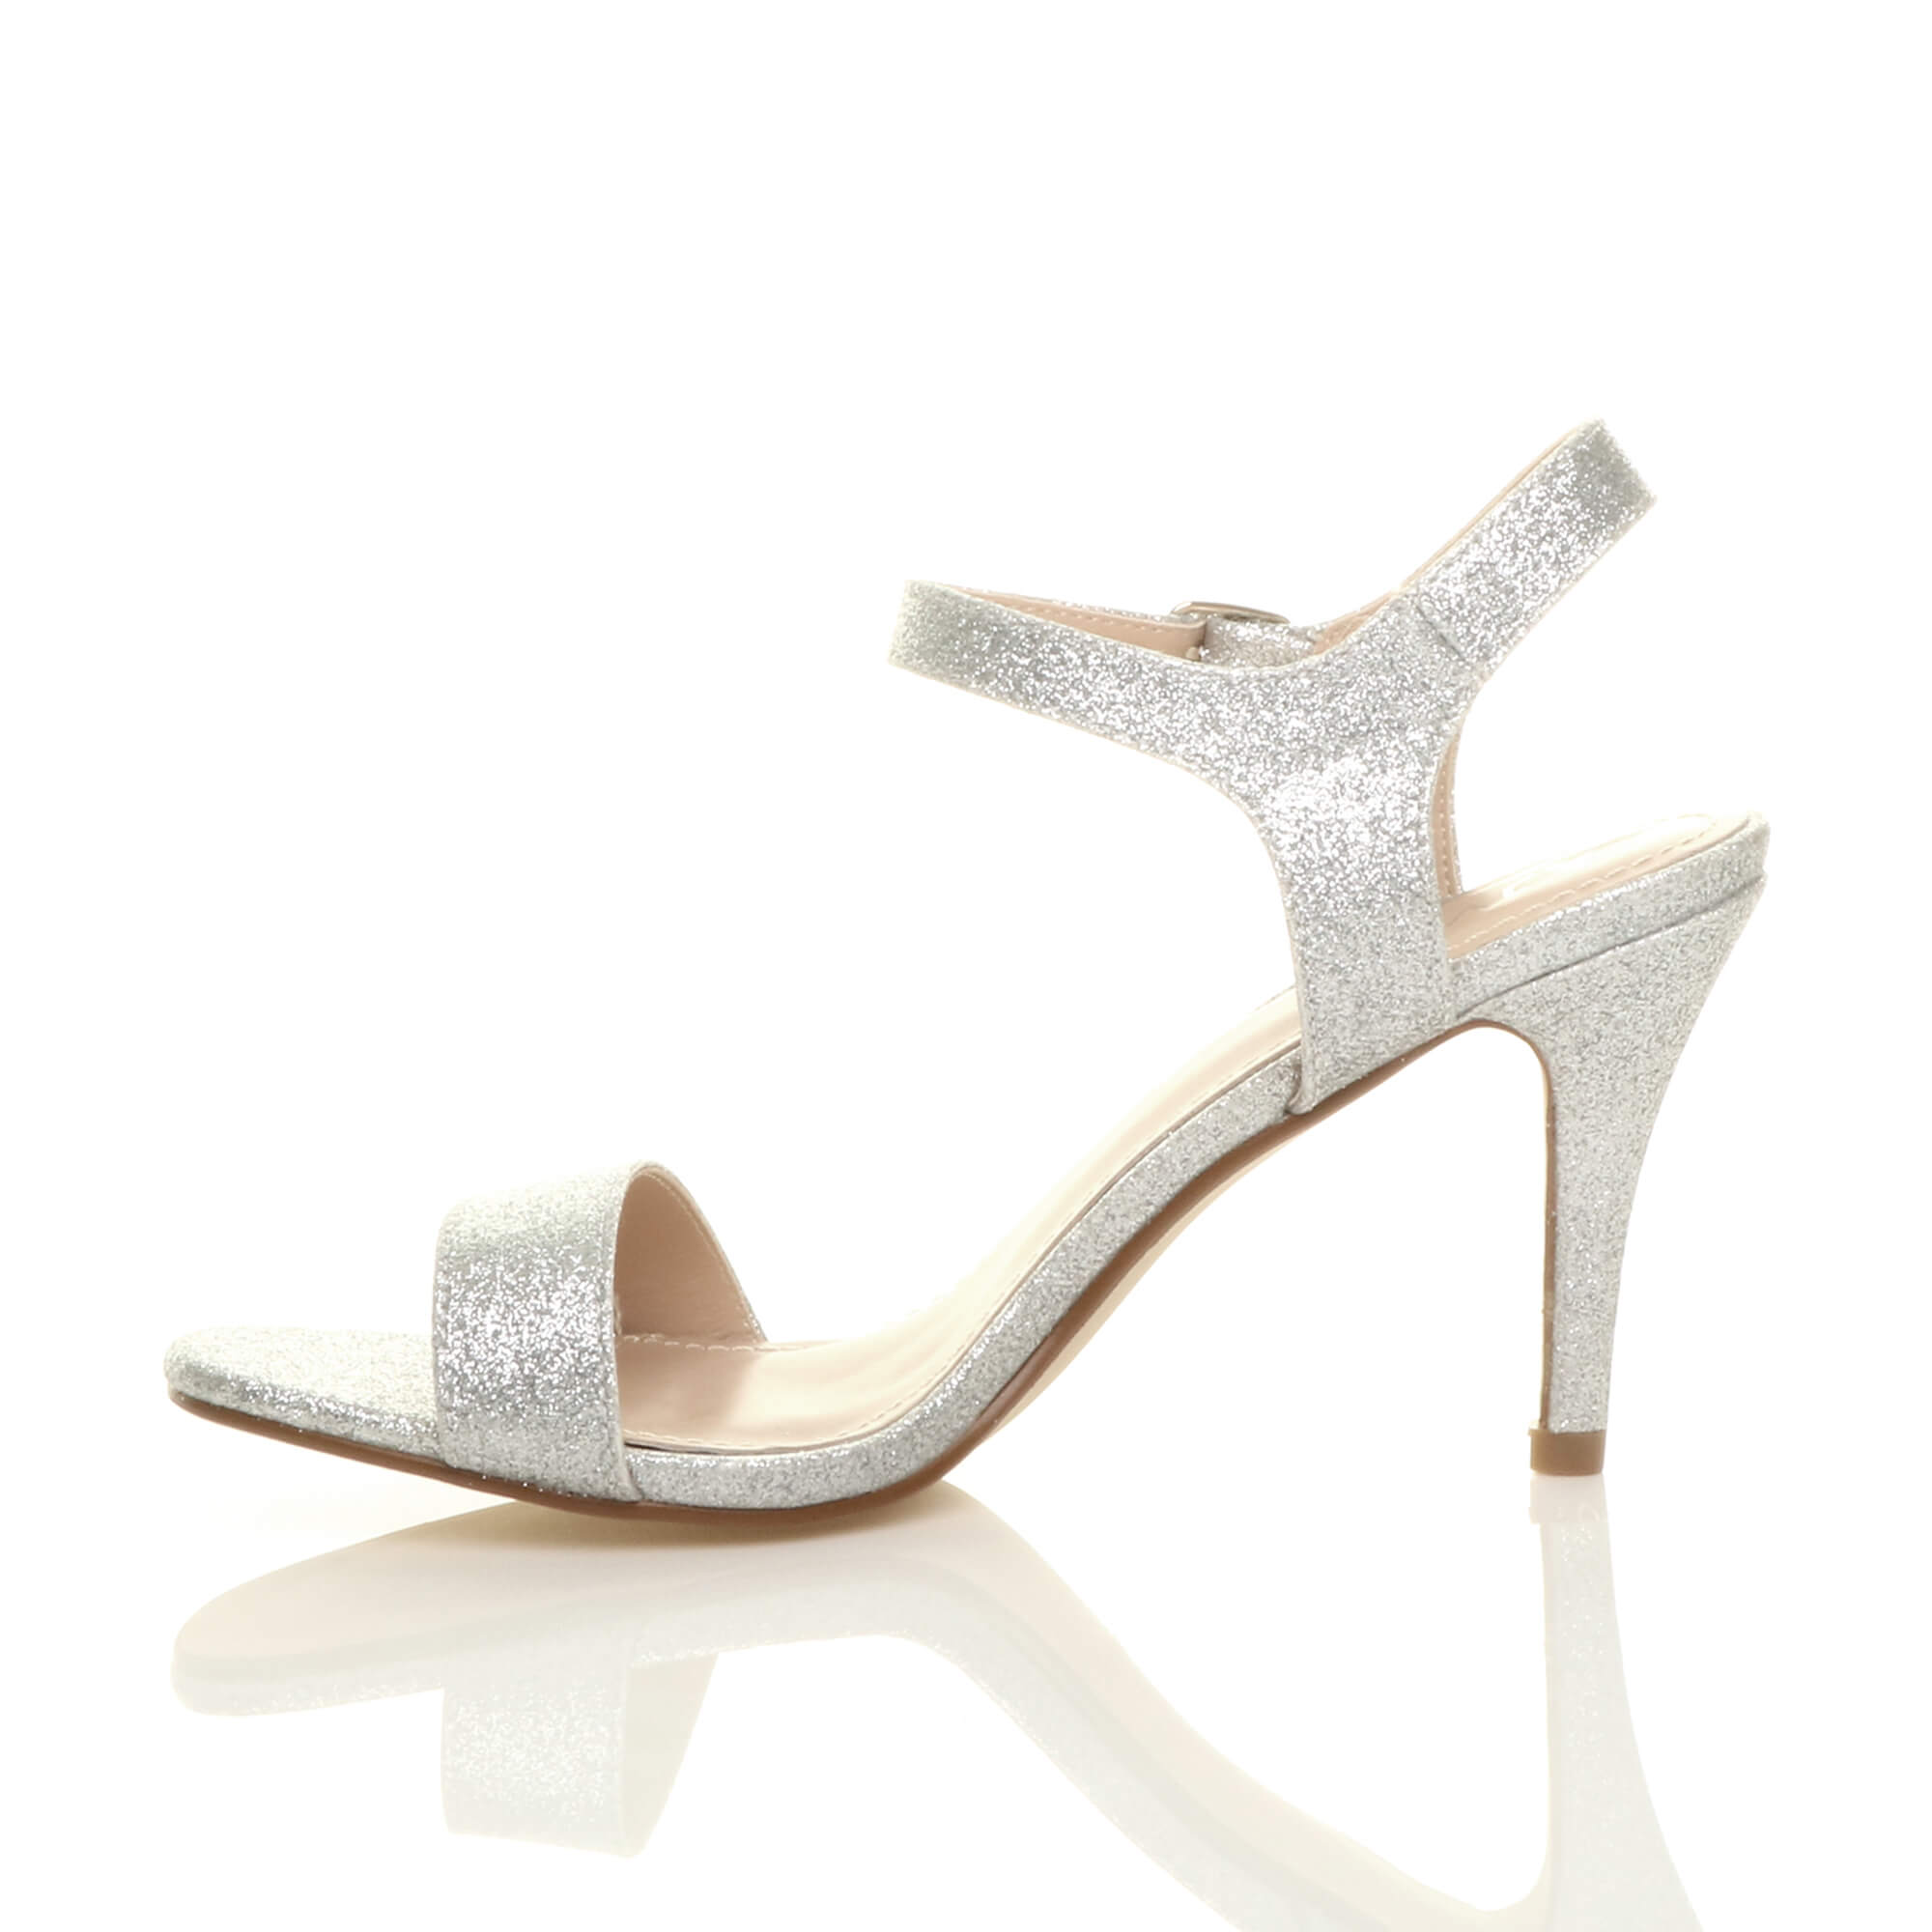 WOMENS-LADIES-HIGH-HEEL-BUCKLE-STRAPPY-BASIC-BARELY-THERE-SANDALS-SHOES-SIZE thumbnail 123